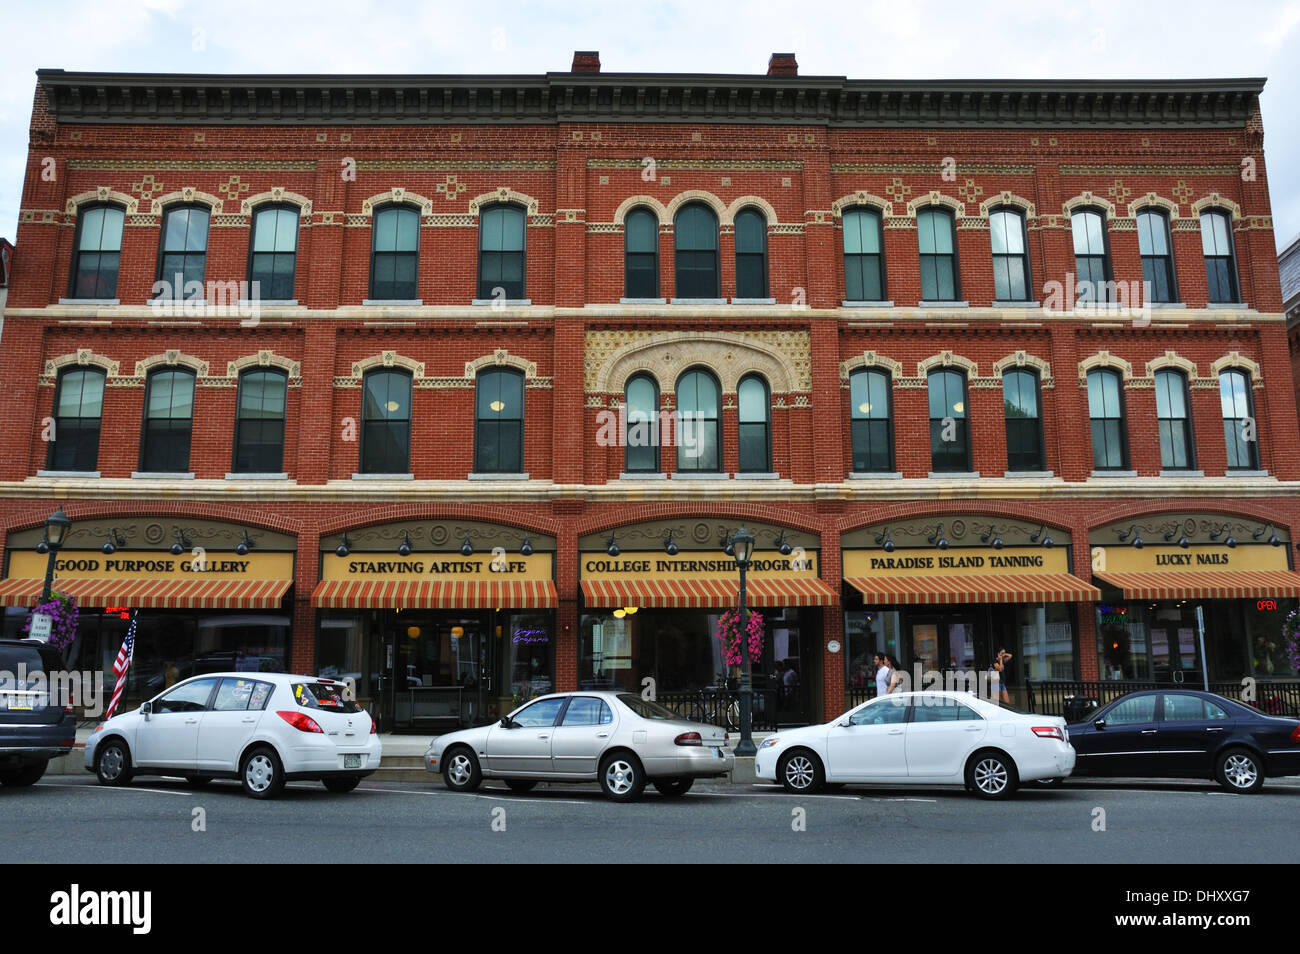 Shops in downtown Lee, Massachusetts, USA Stock Photo: 62671847 - Alamy